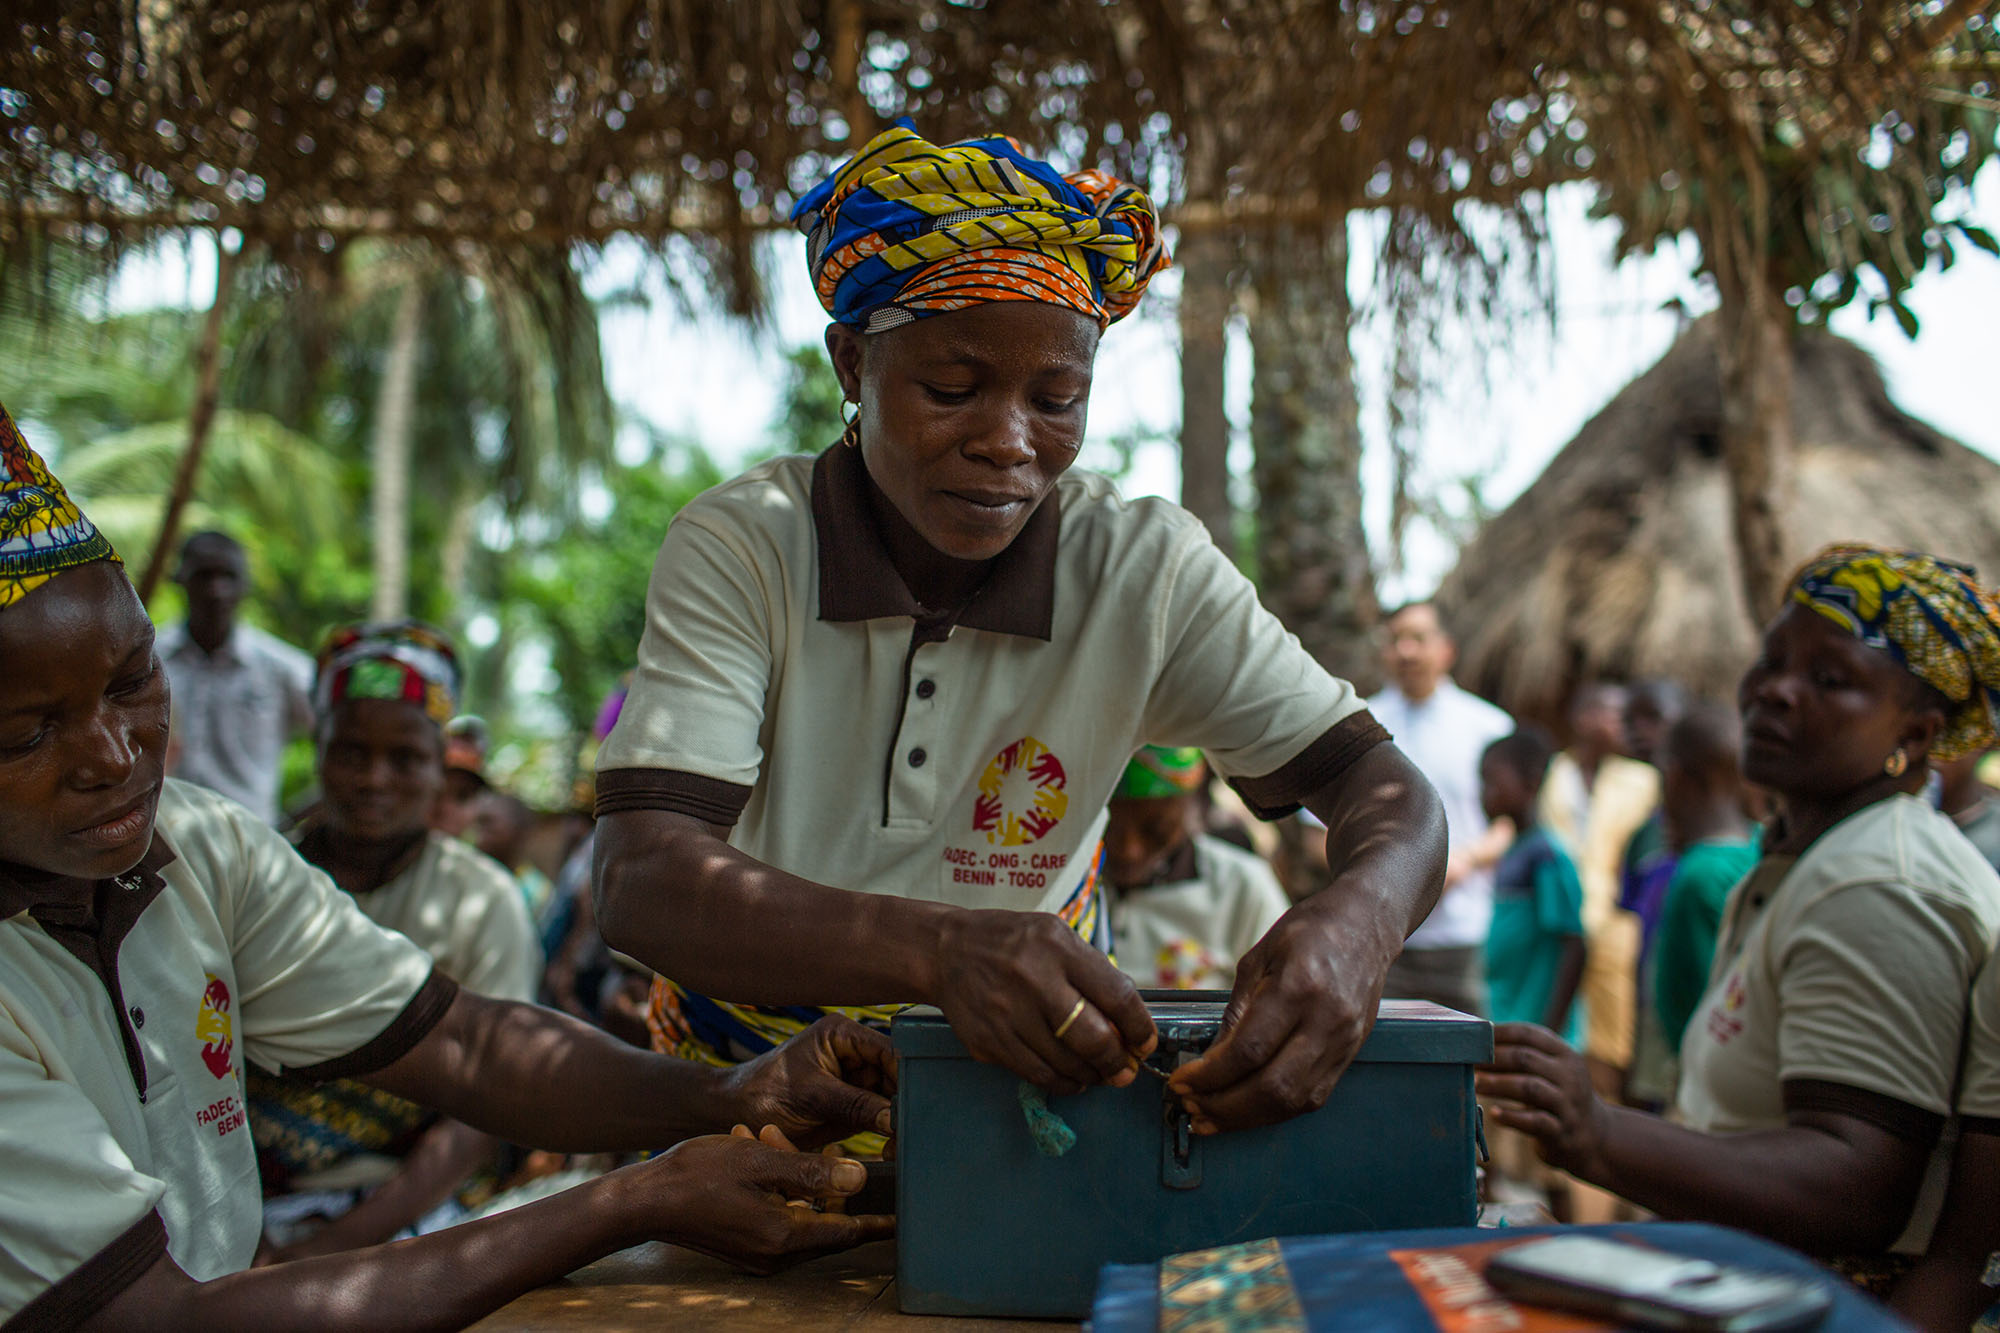 FINGNIKANME DANGBO COMMUNE, BENIN:  April 4, 2016 - CARE advocates watch as a village savings and loan group in Benin perform a mock meeting. Photo by Morgana Wingard